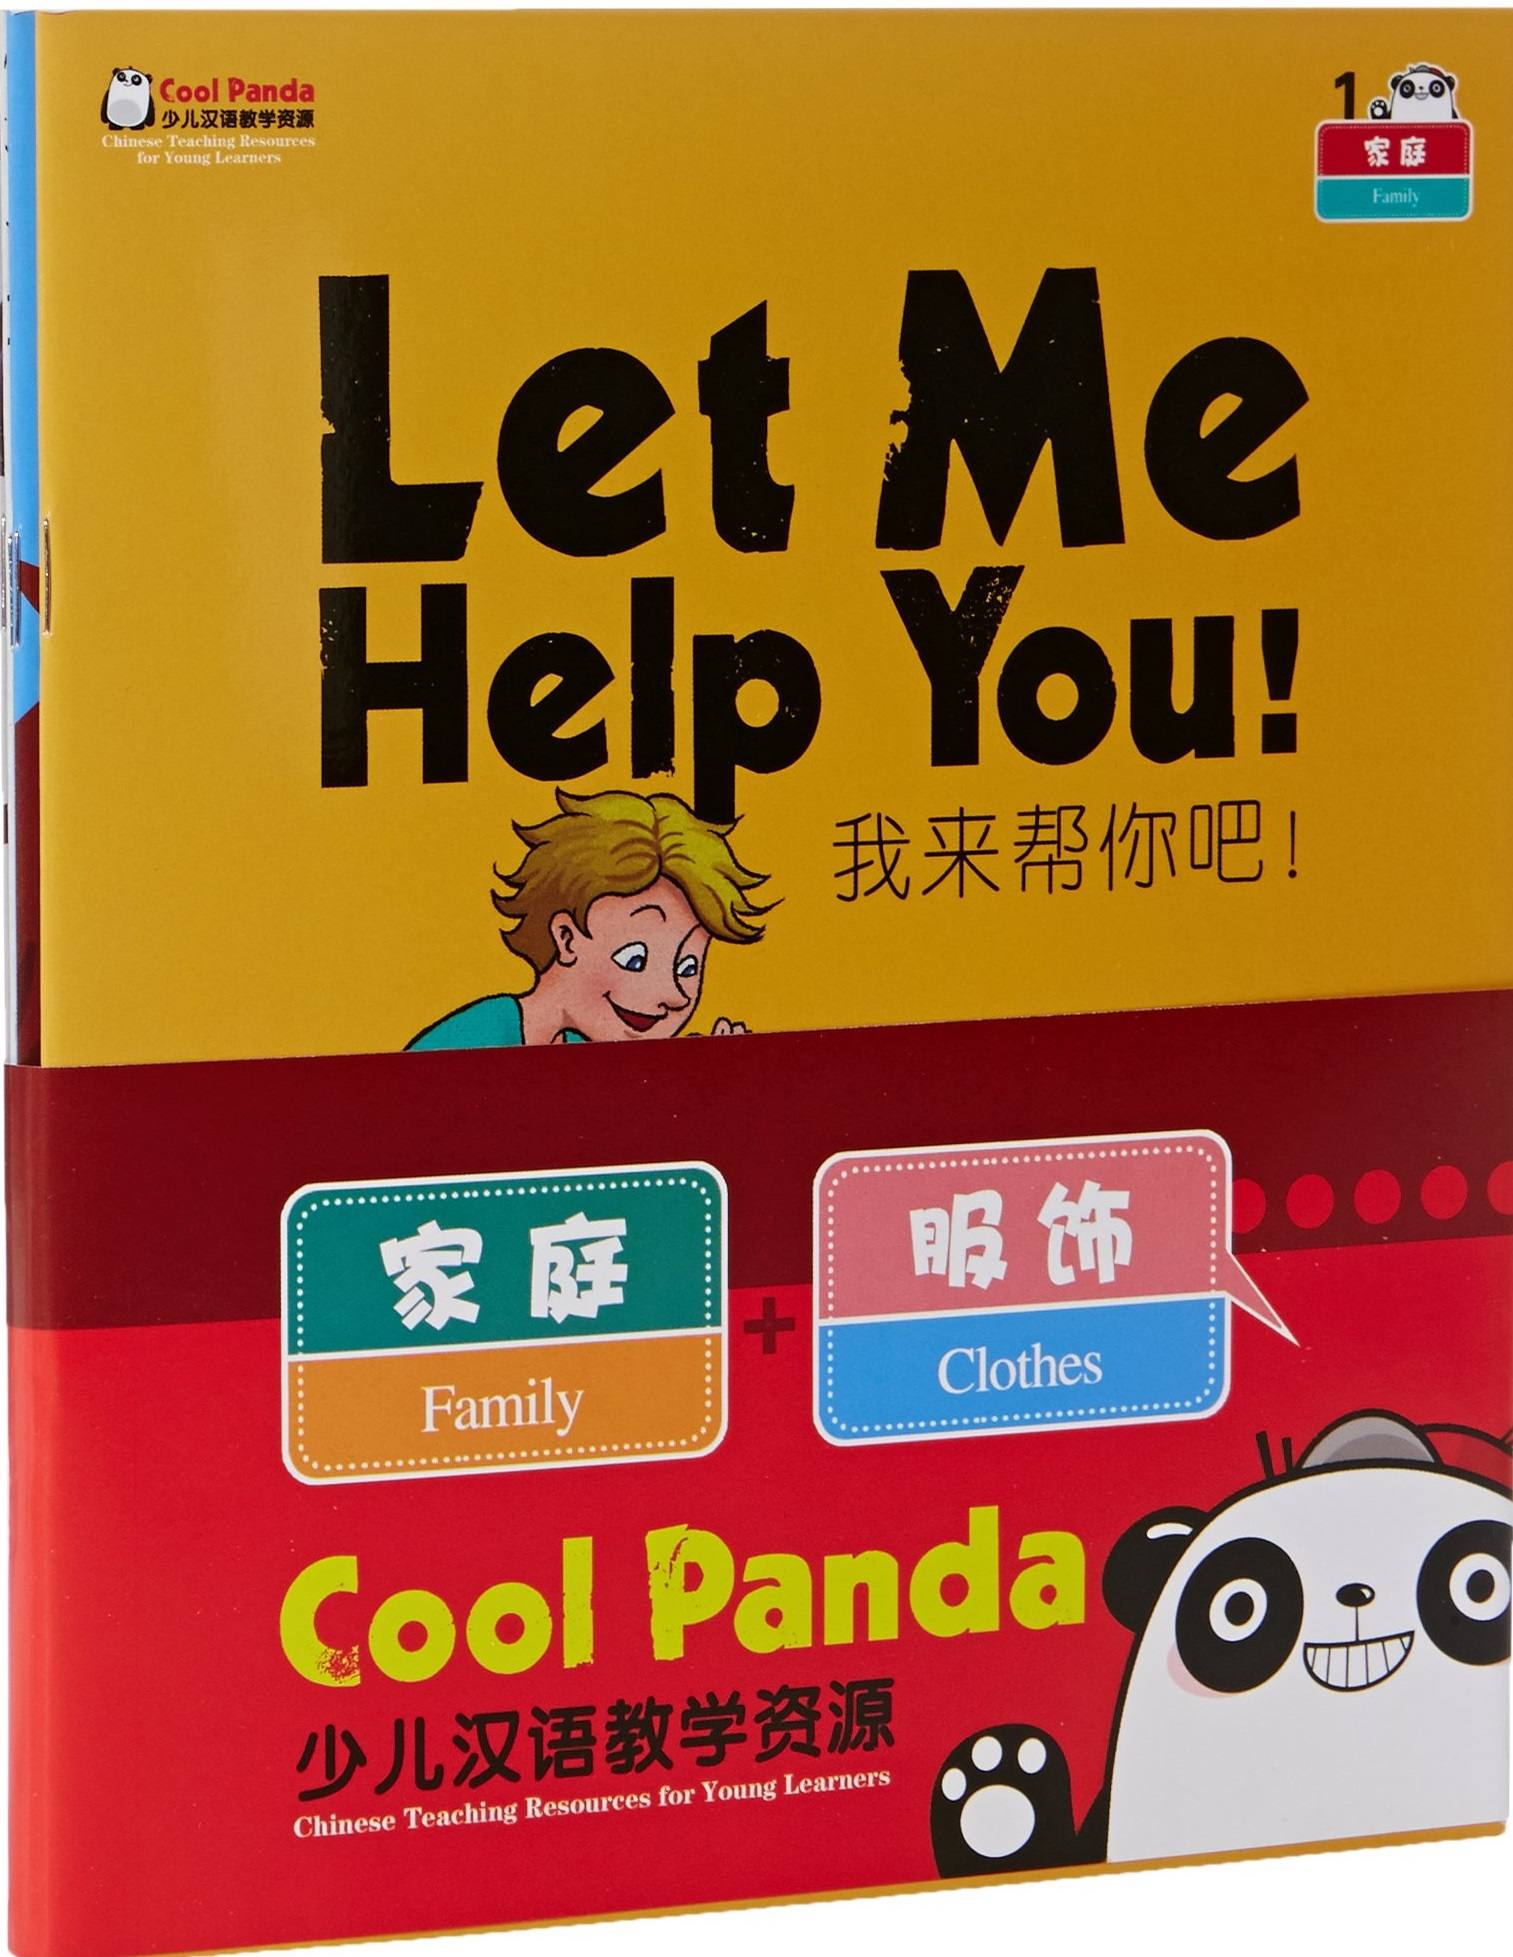 Family and Clothes - Cool Panda Chinese Language Teaching Resources for Young Learners Level 1